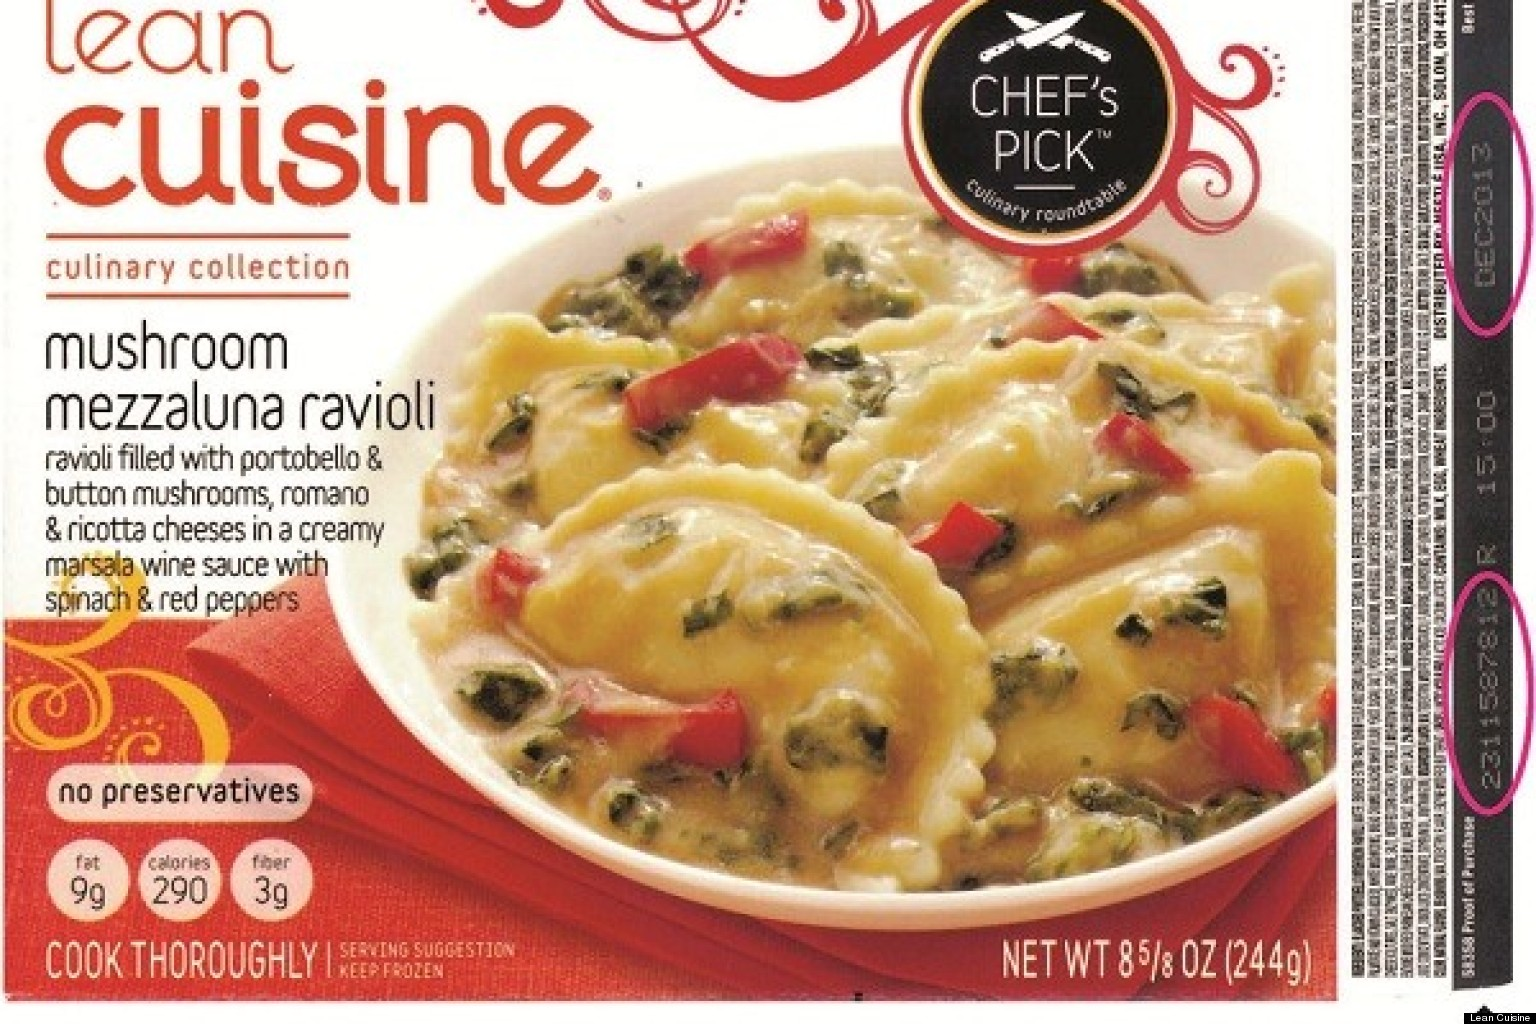 Image gallery lean cuisine for Are lean cuisine meals good for you